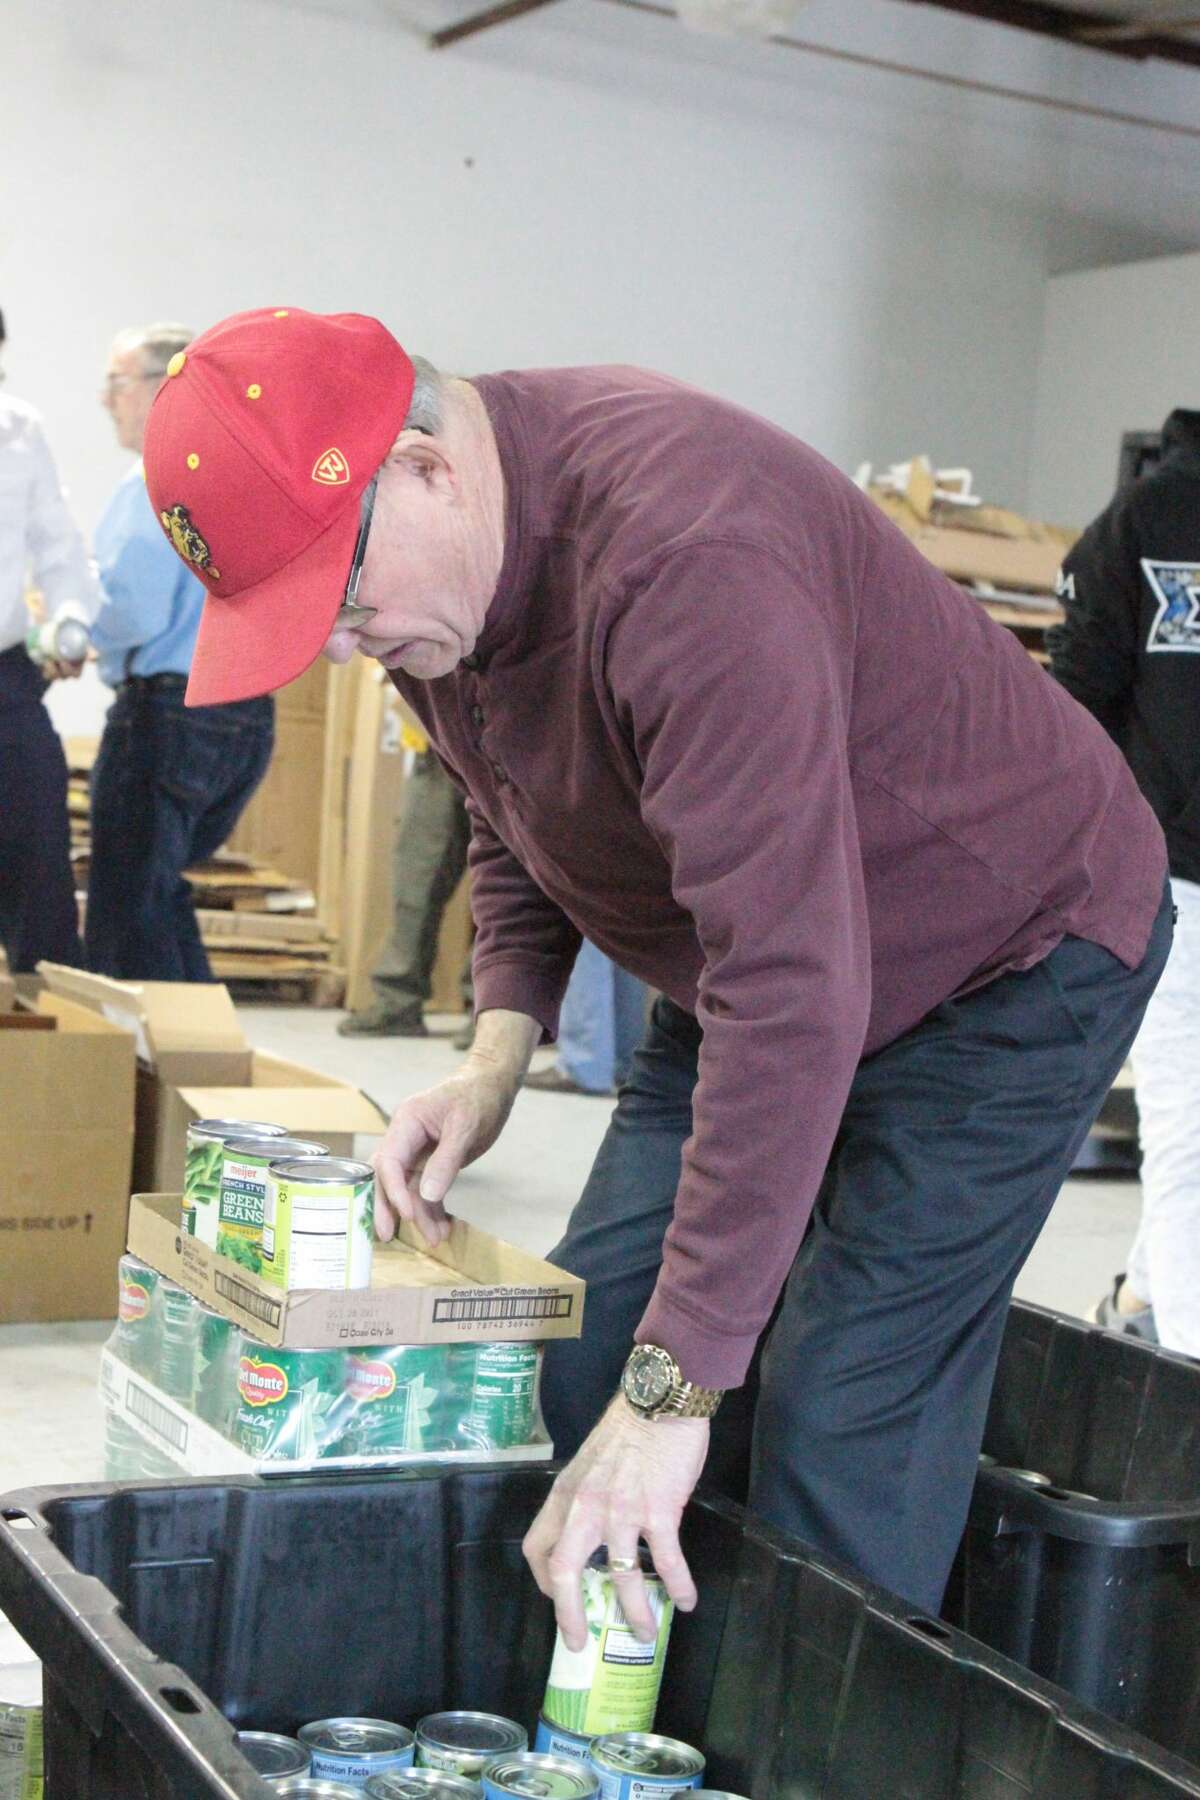 Volunteers with the Rotary Club of Big Rapids and Sigma Alpha Epsilon fraternity from Ferris State University, descended upon the Great Lakes Book and Supply warehouse on Clark Street Tuesday to pack and distribute Thanksgiving care packages for local families.